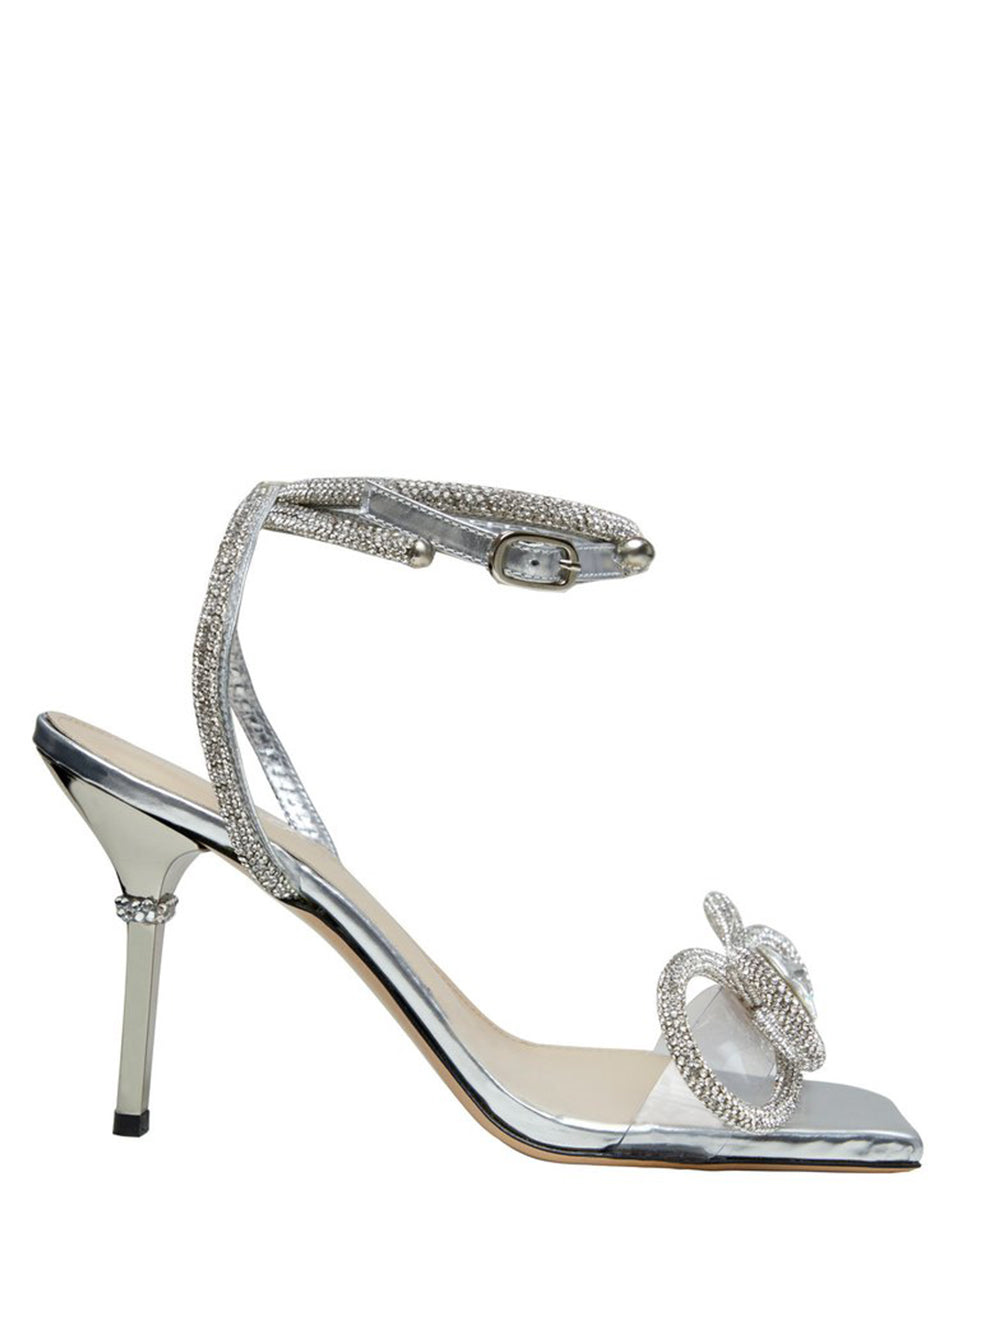 Crystal Bow-Embellished Sandals